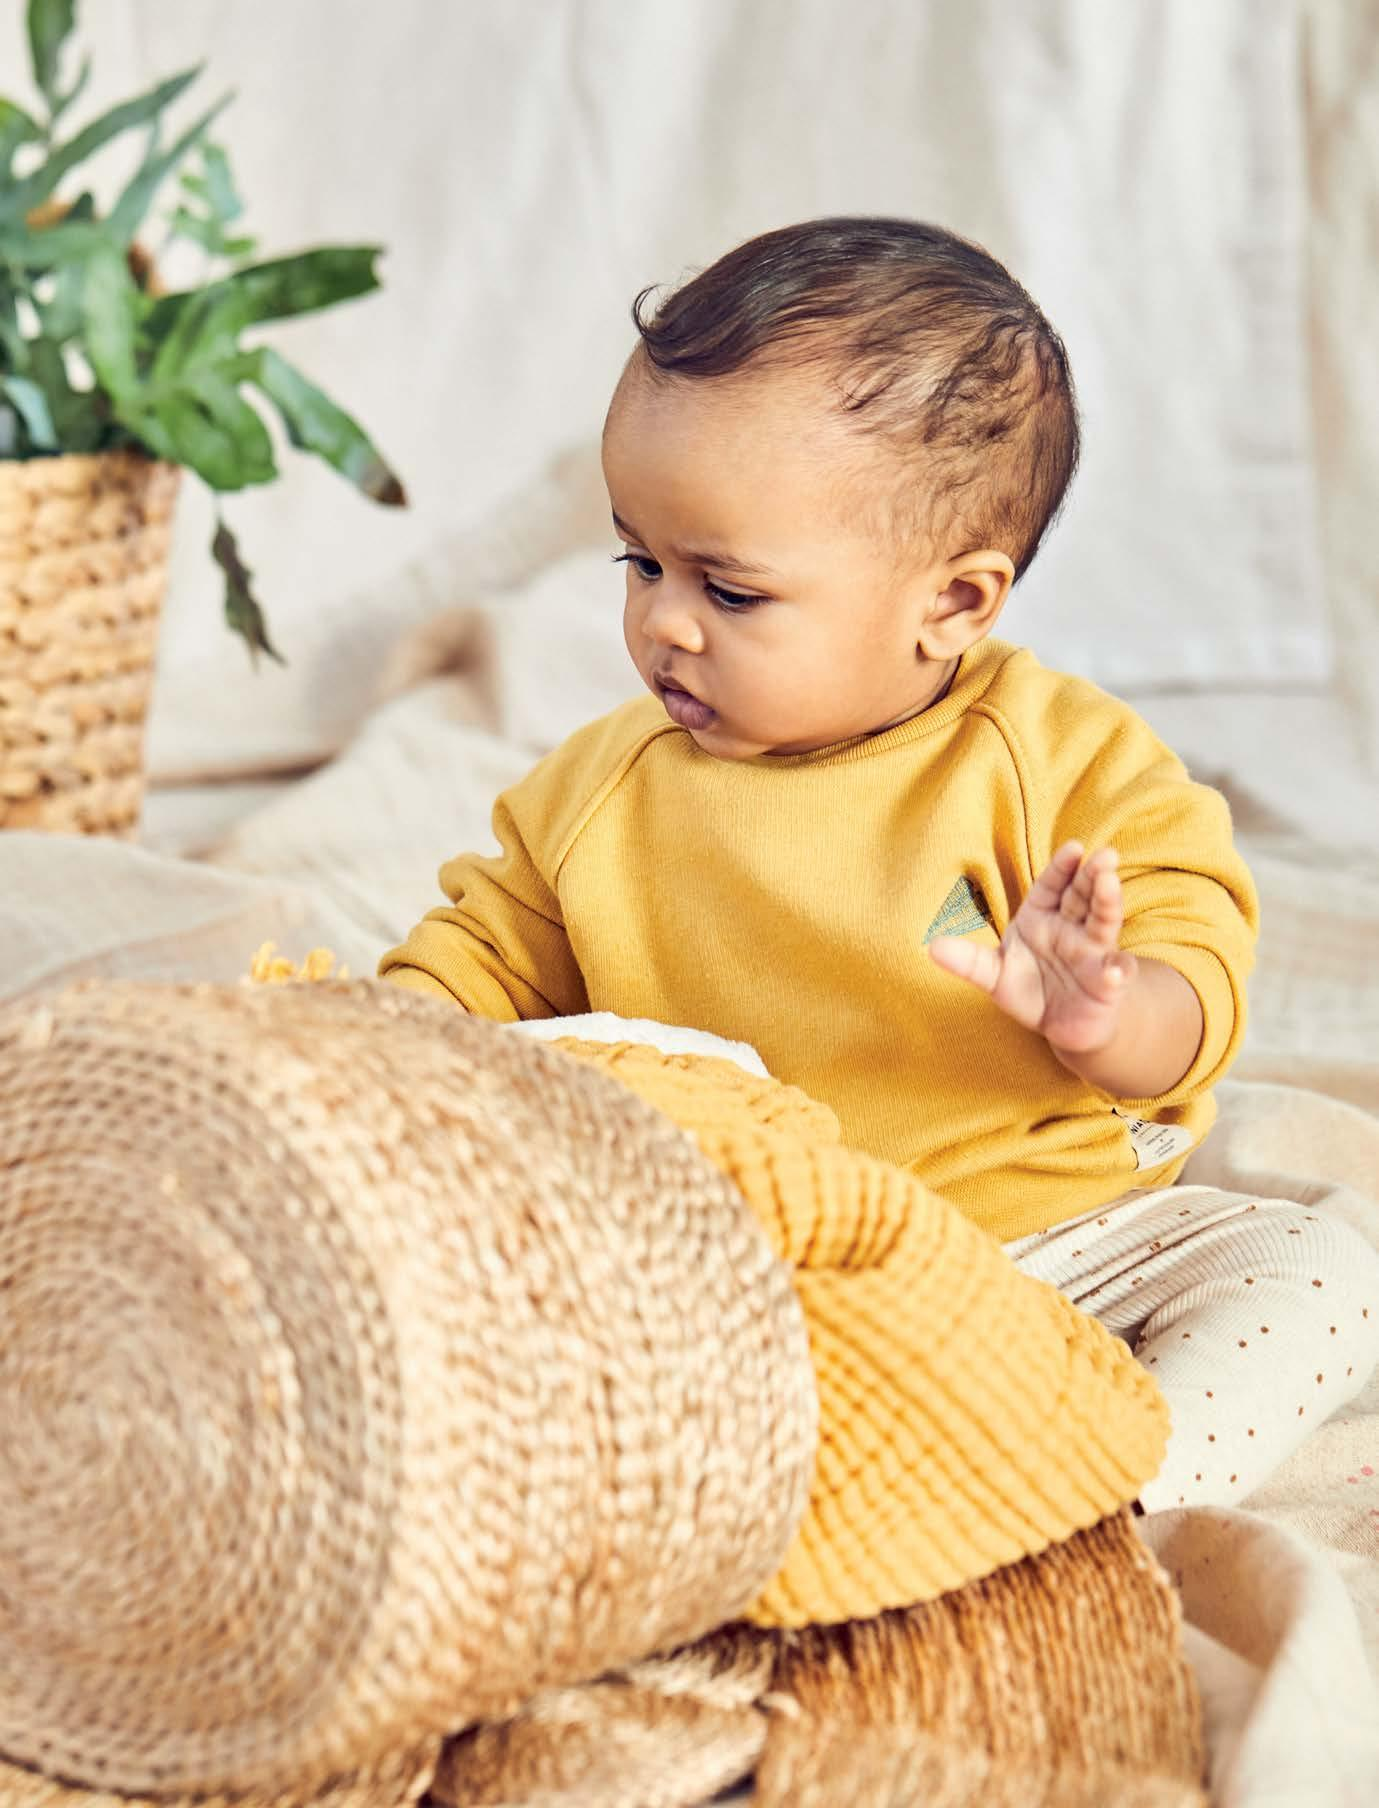 Page 36 of ALL NATURAL Dress your little one up in super-soft, breathable cottons, linens and knits in soft tones this springtime